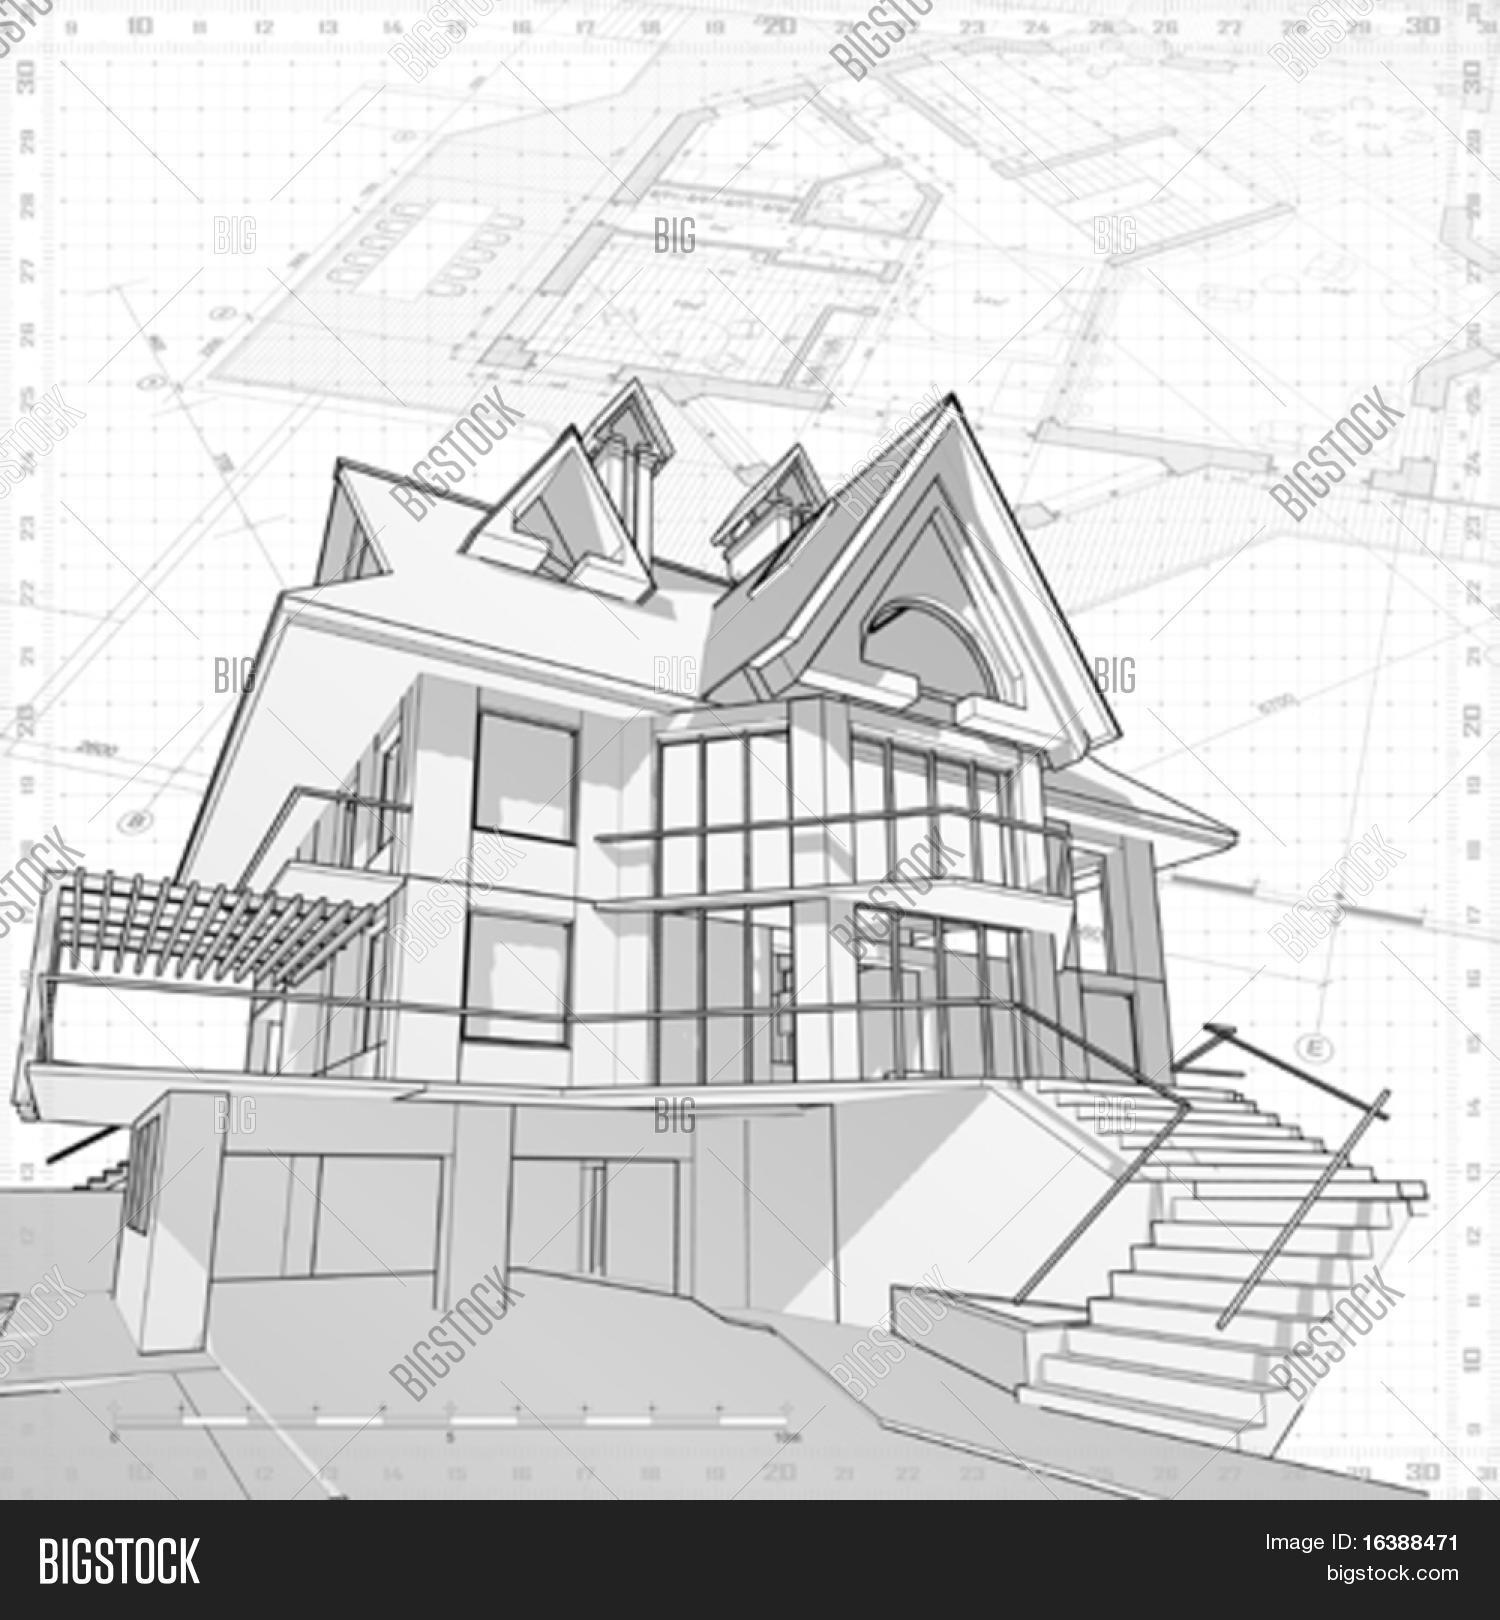 Marvelous 3d House: Vector Technical Draw